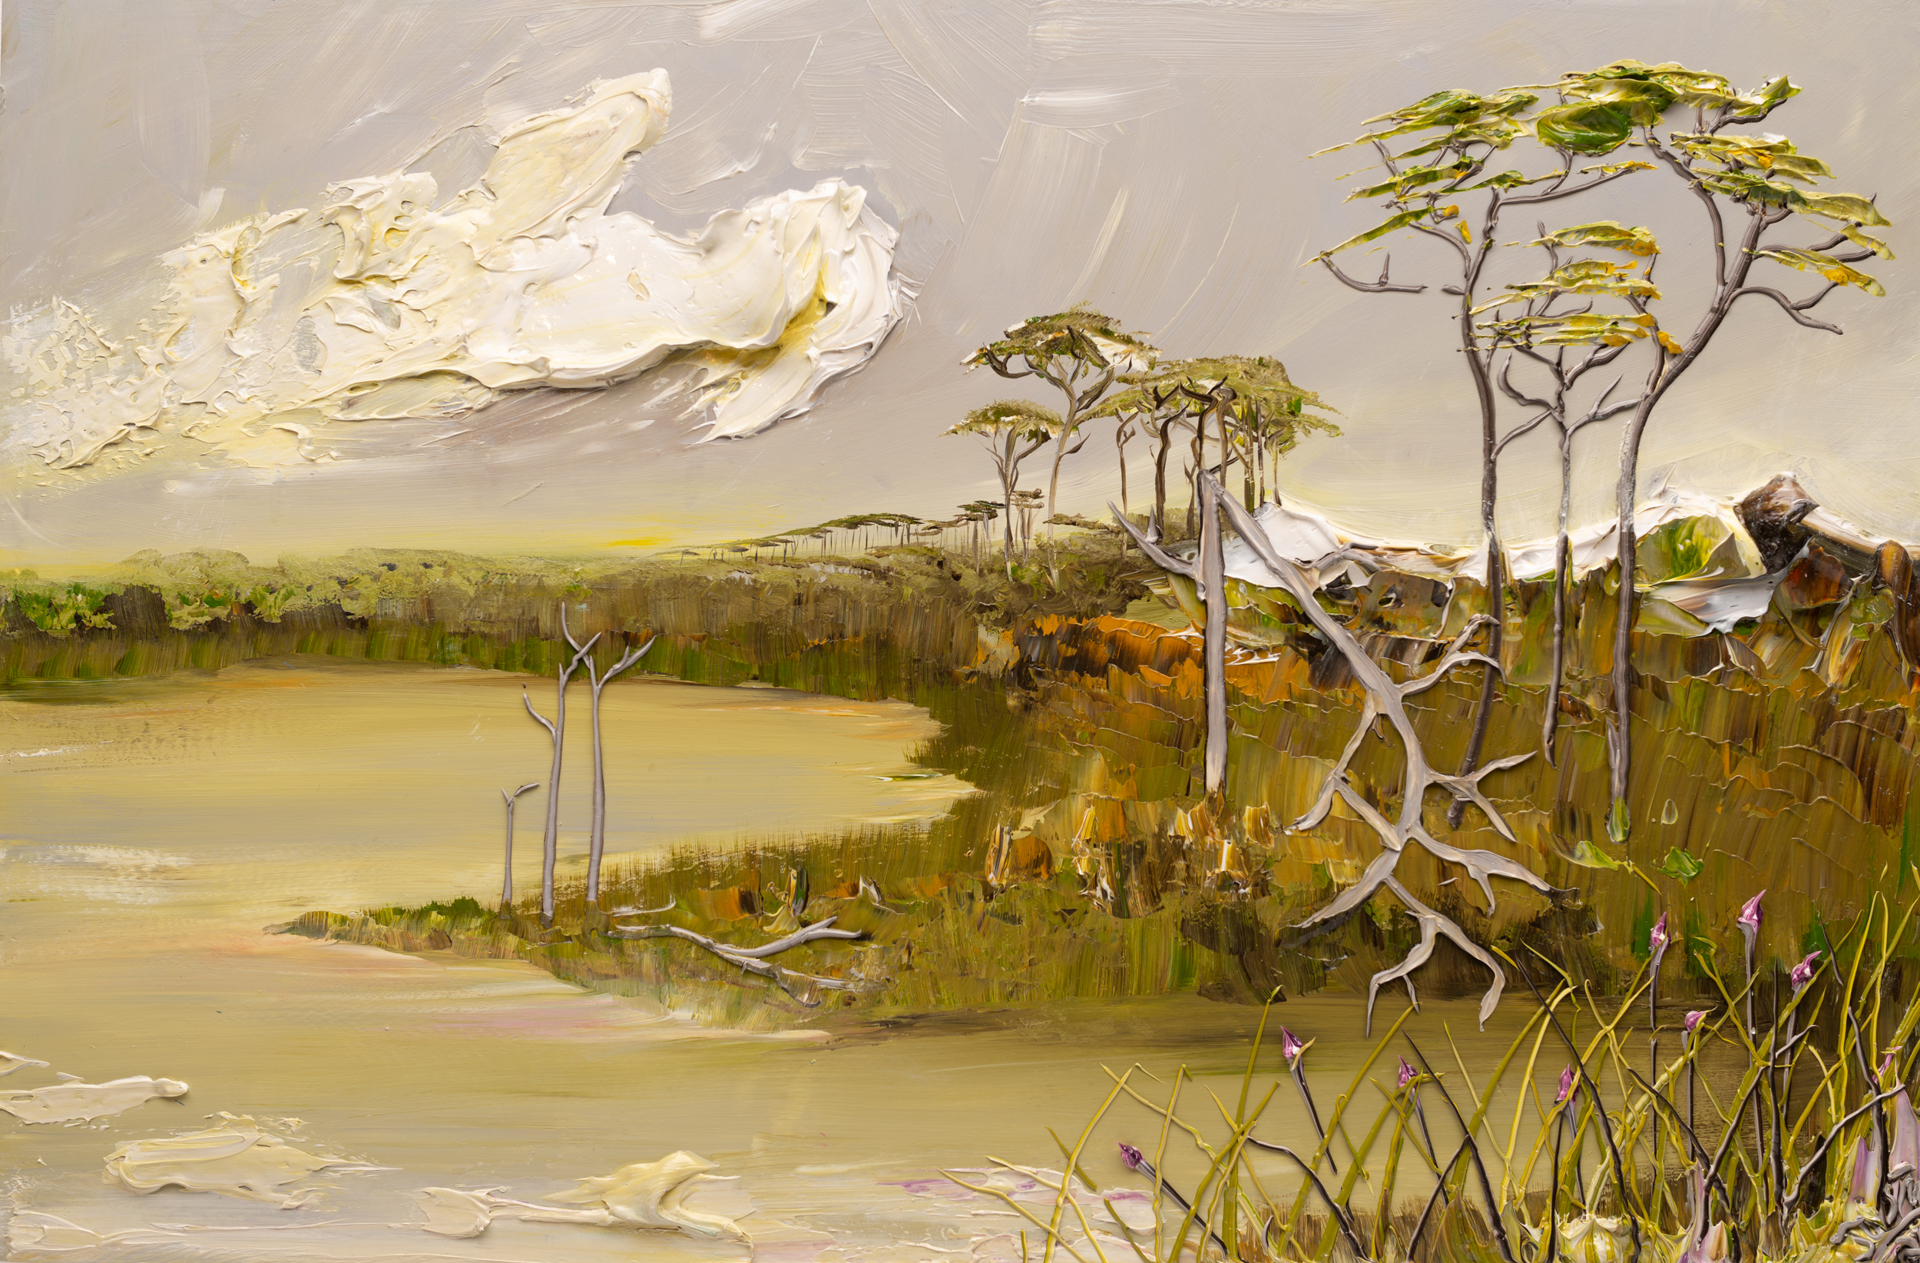 LAKESCAPE LS-36X24-2020-008 by JUSTIN GAFFREY